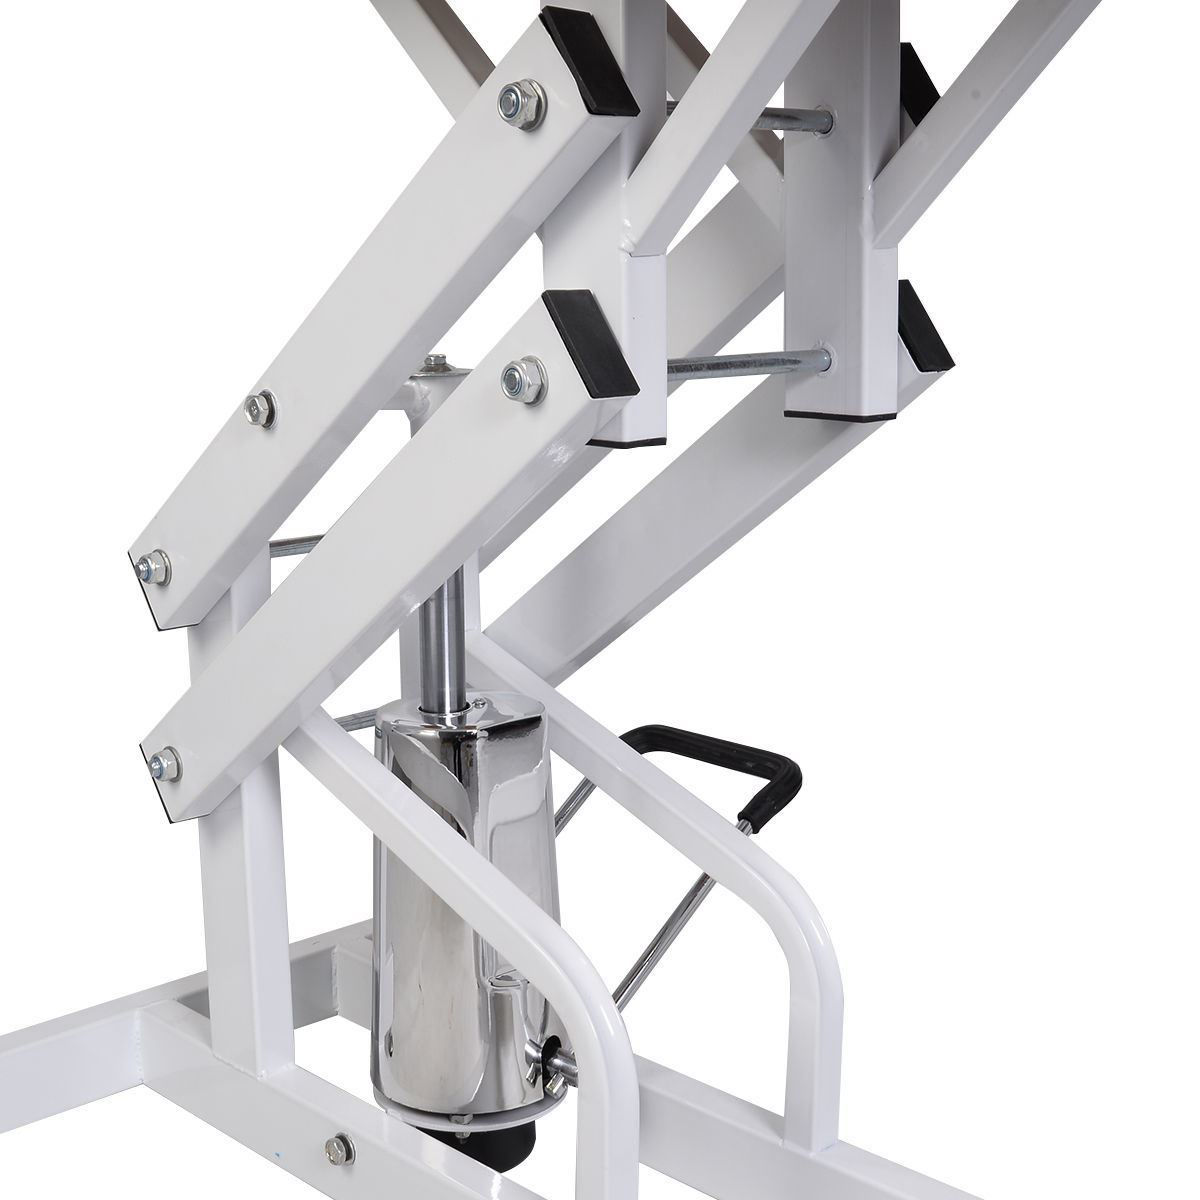 Picture of Hydraulic Z-Lift Adjustable Pet Grooming Table with Arm and Noose